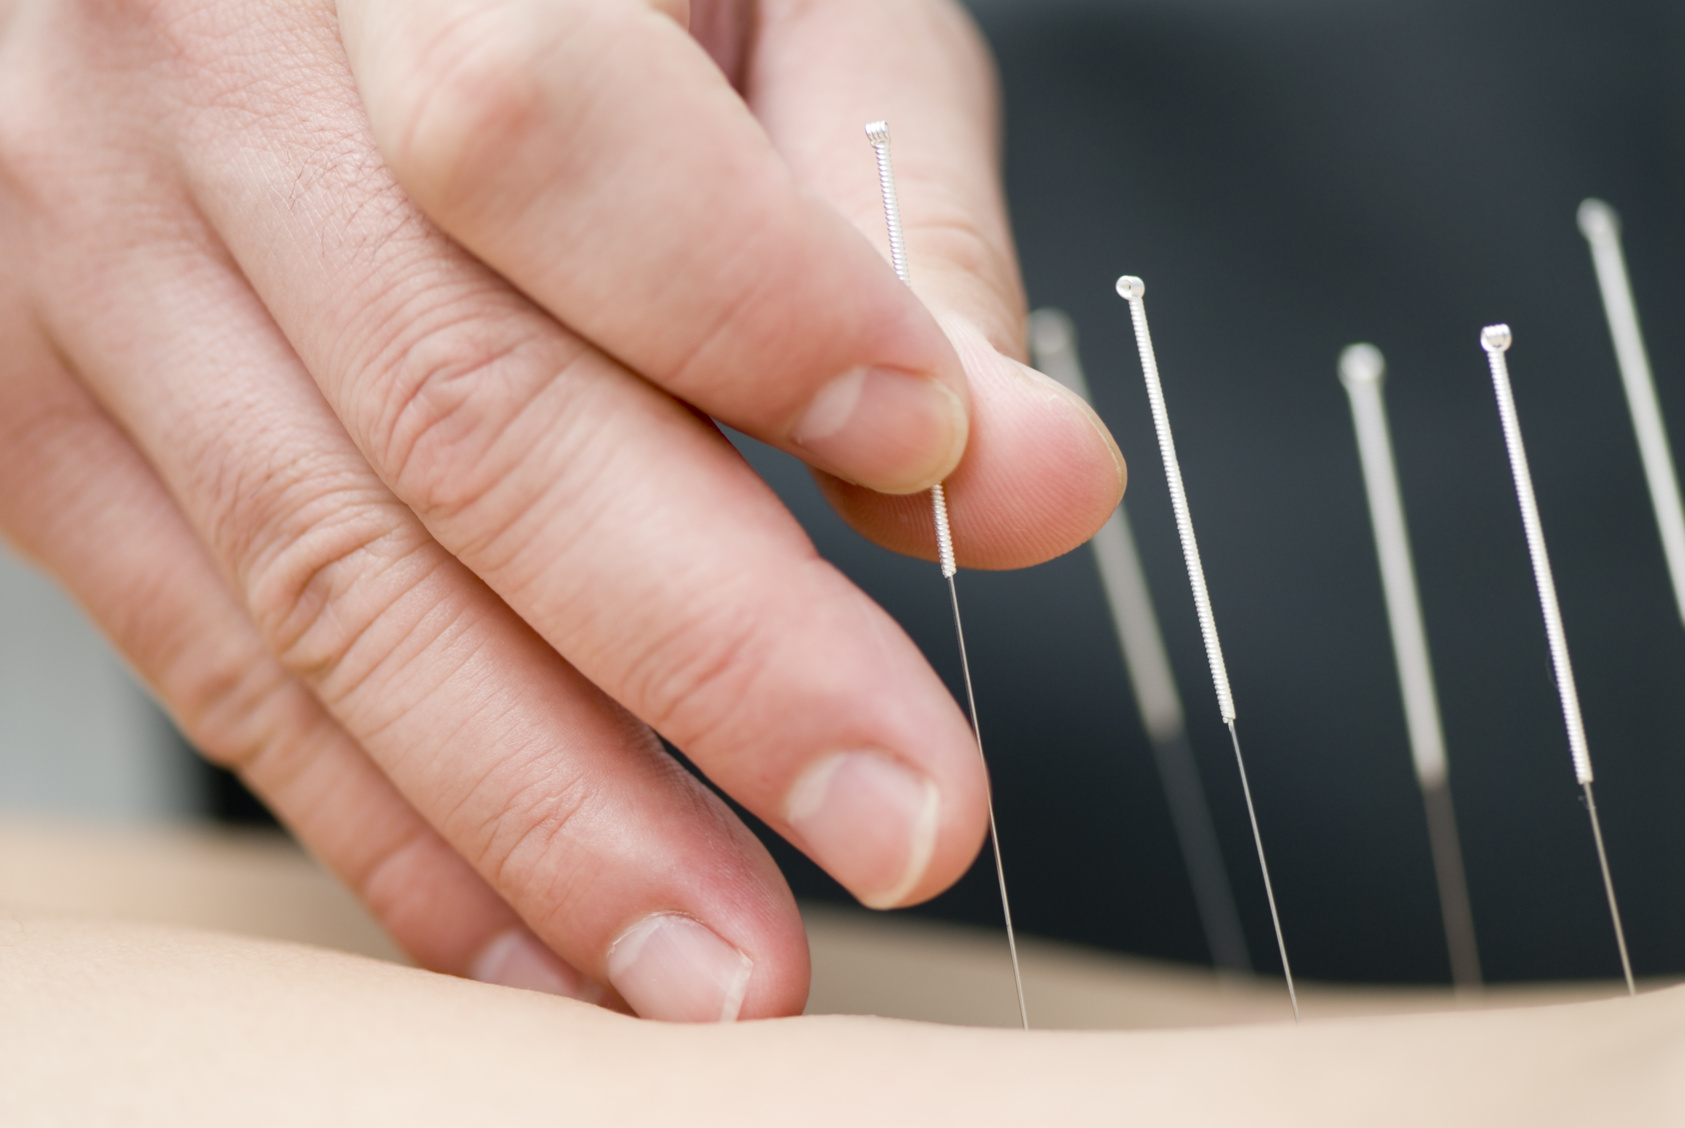 ACUPUNCTURE  Acupuncture is system of health that was developed over 3000 years ago. For one reason or another, the energy in our bodies becomes dysfunctional. To restore our body's natural balance of energy, needles are inserted at different parts of the body to facilitate healing and relieve pain.